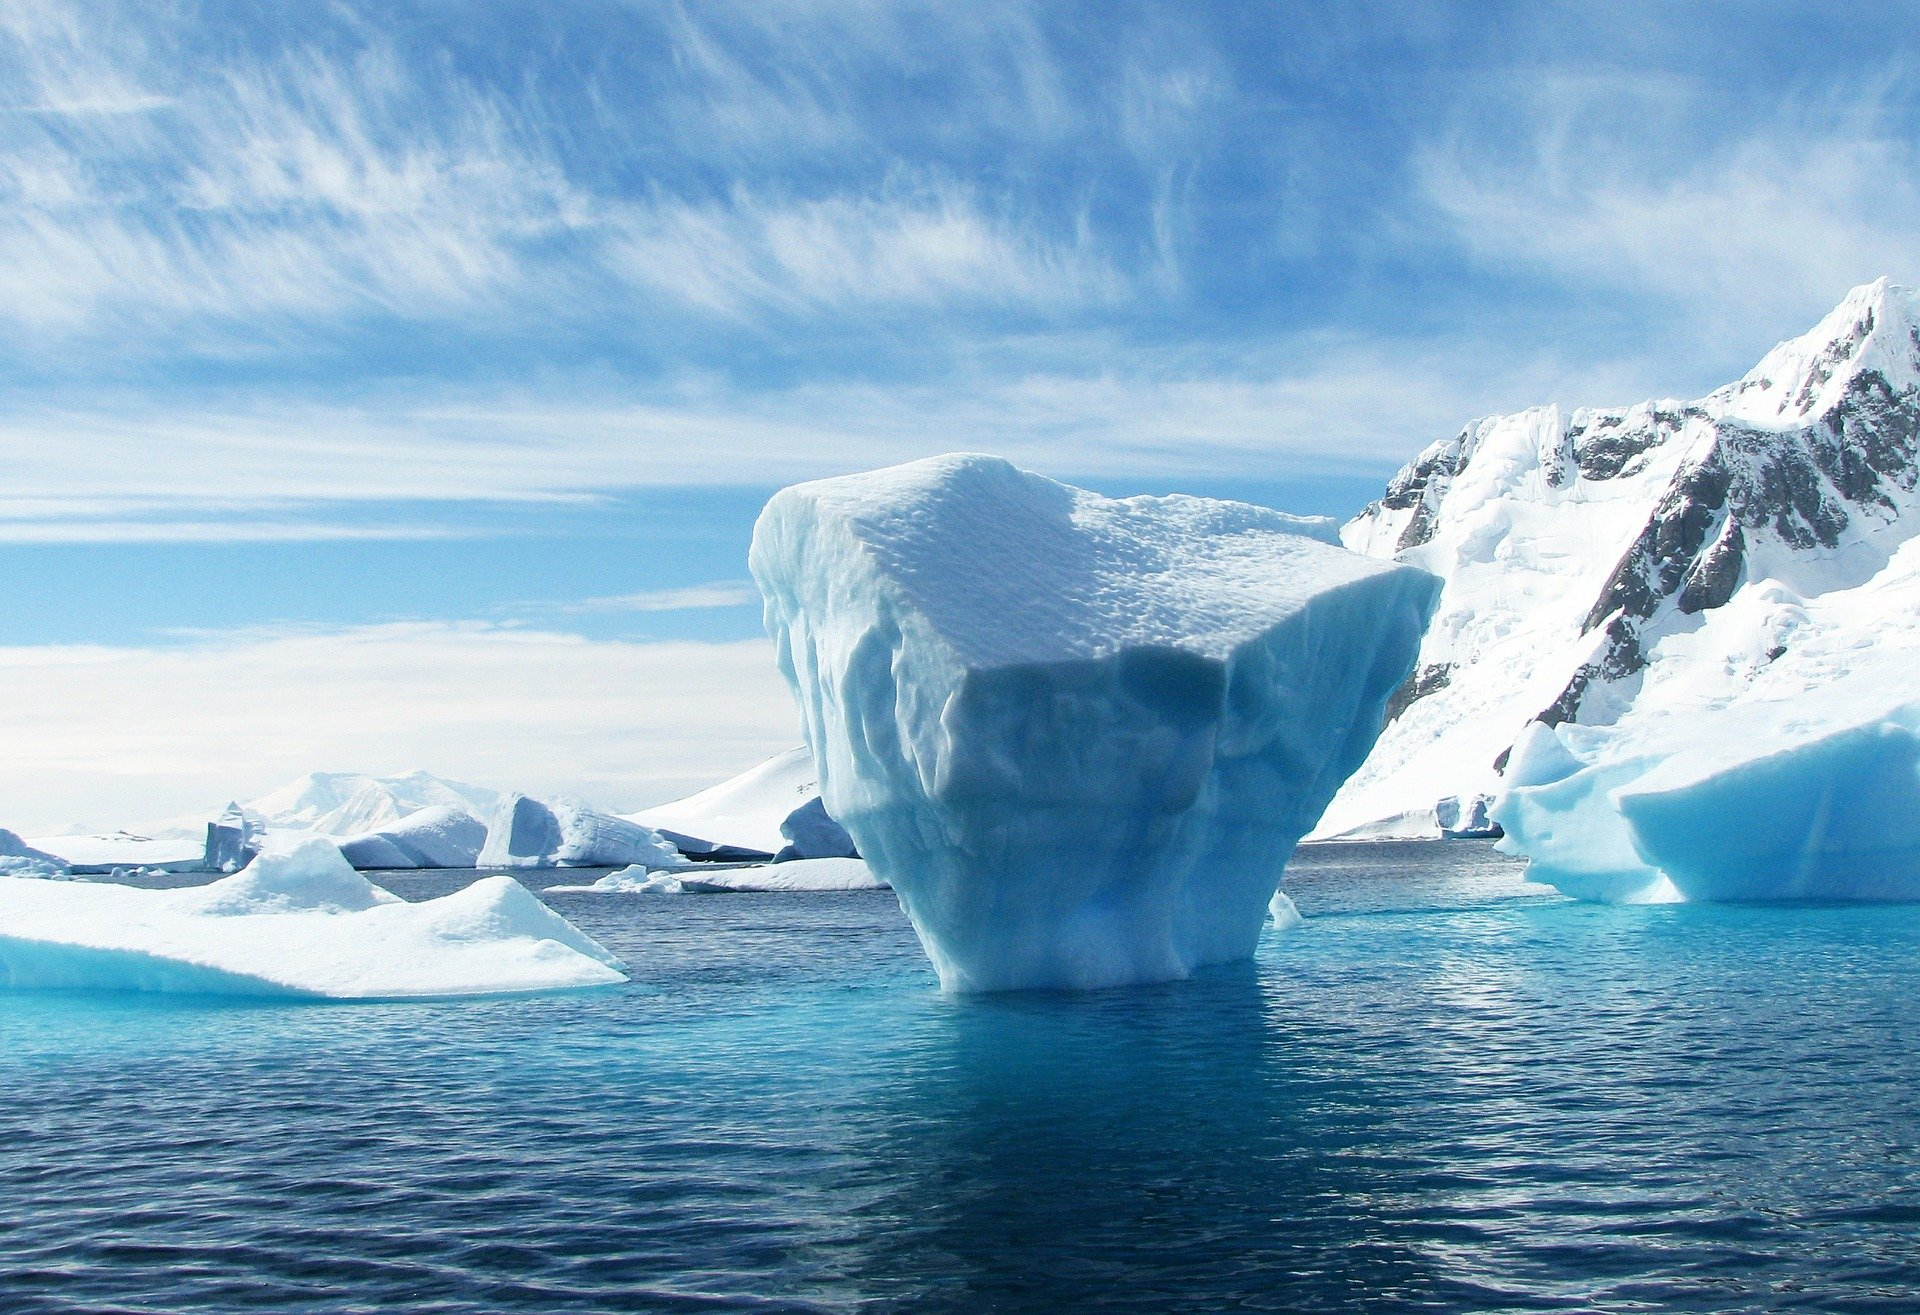 Glaciers and Icebergs in Antarctica